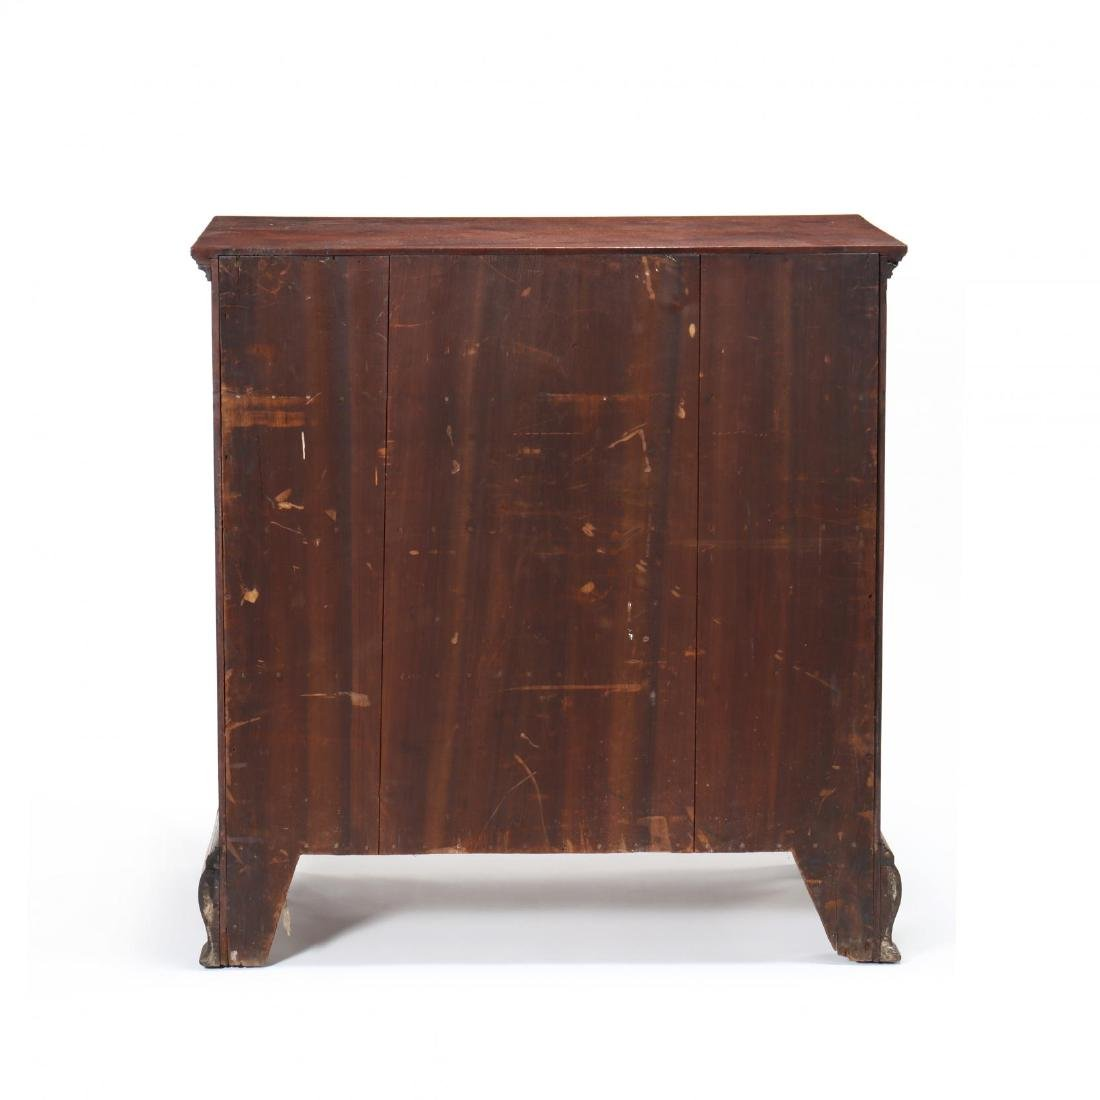 Mid-Atlantic Chippendale Walnut Chest of Drawers - 6